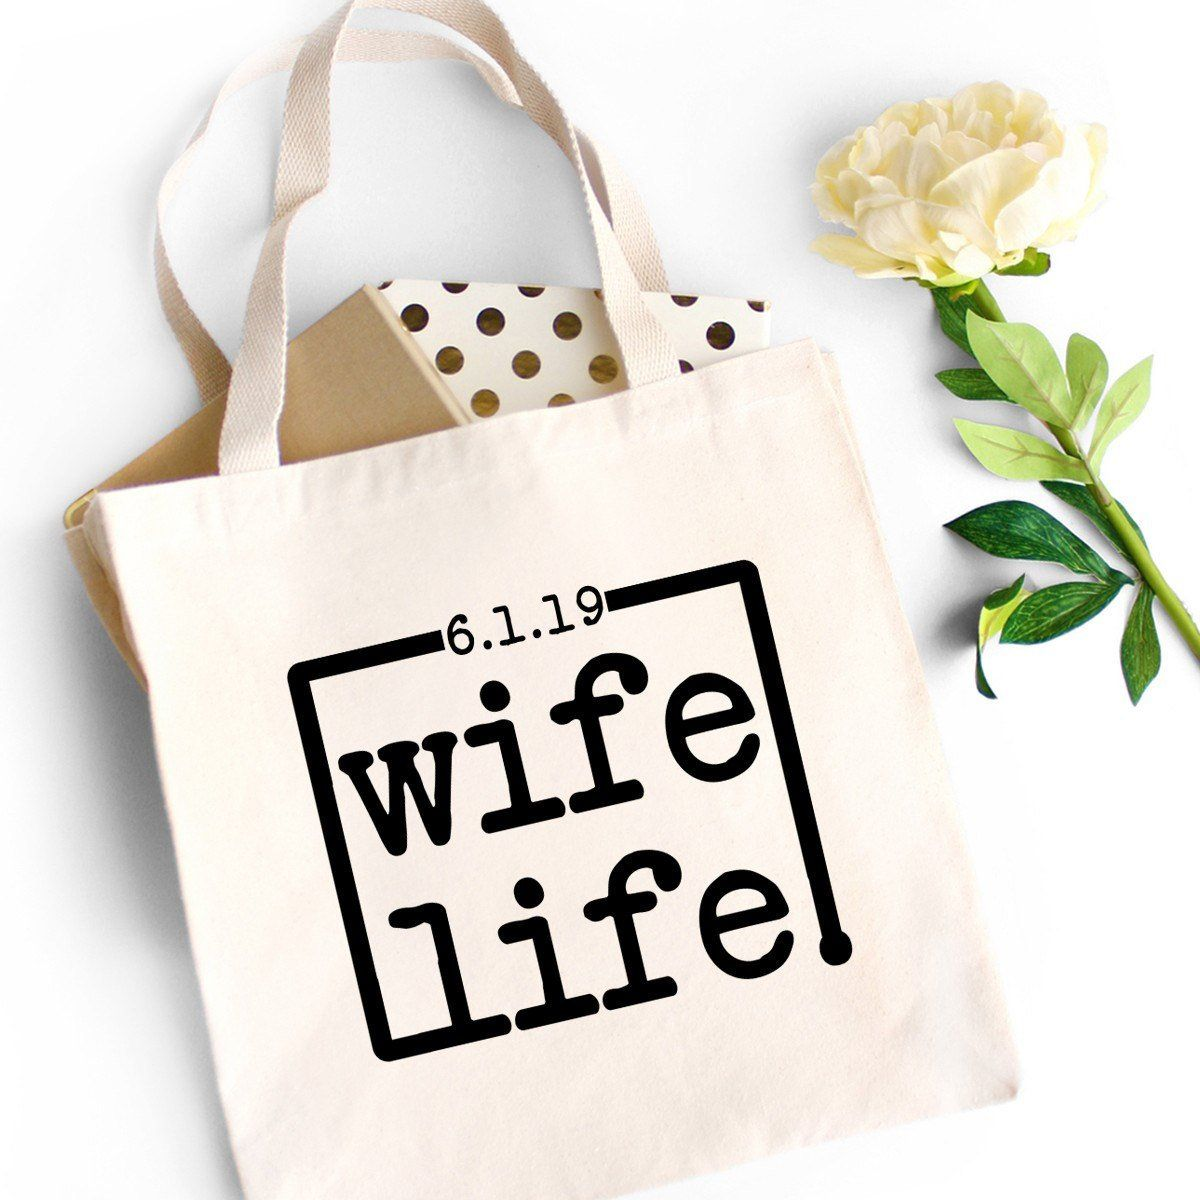 Totes Engaged Tote Bag Funny Cotton Shopping Lightweight Bridal Shower Bride Hen